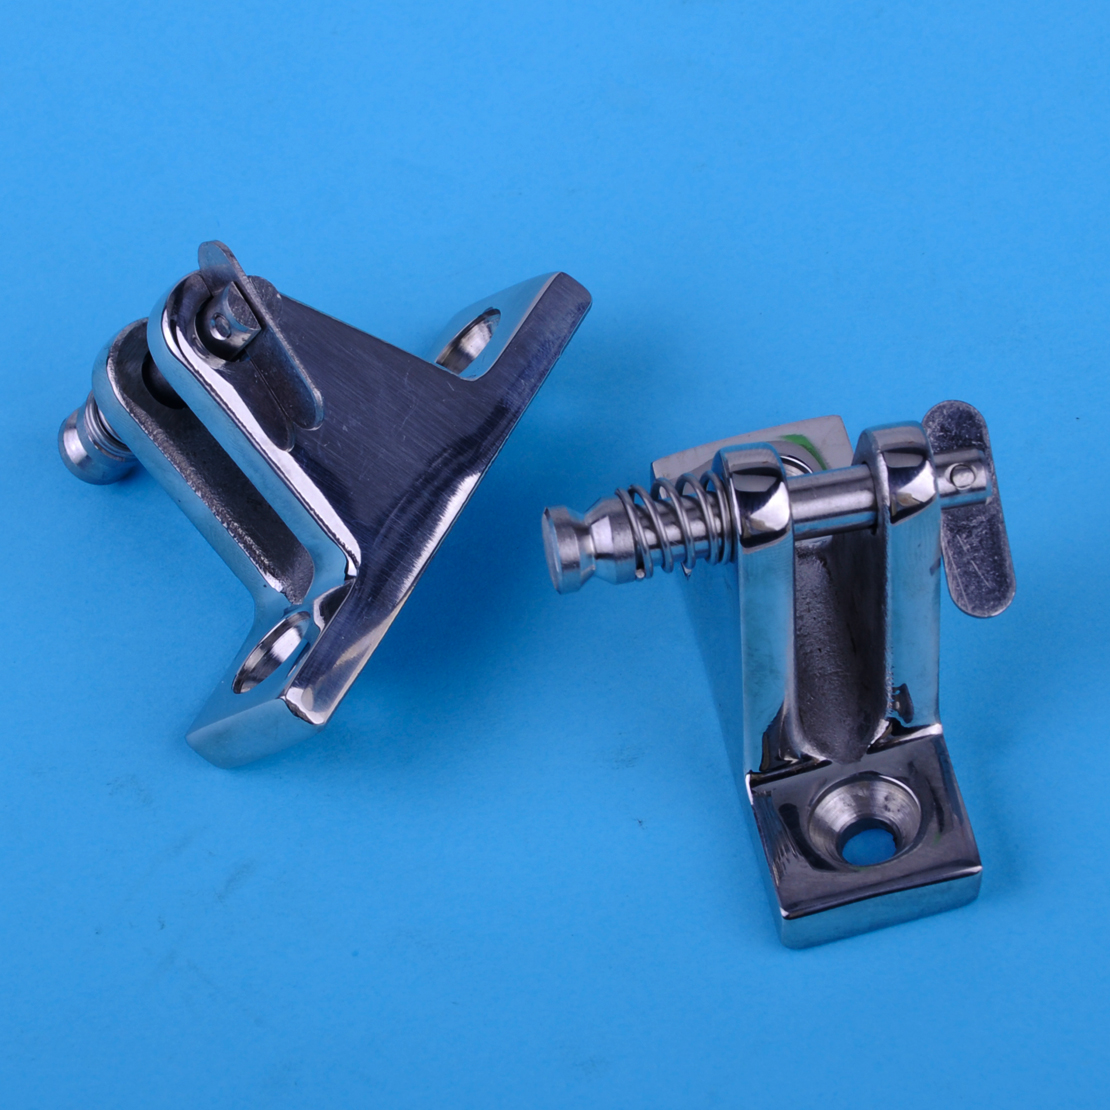 beler 2pcs 90 Degree Stainless Steel Boat Marine Deck Hinge With Quick Release Pin Hardware Fittings